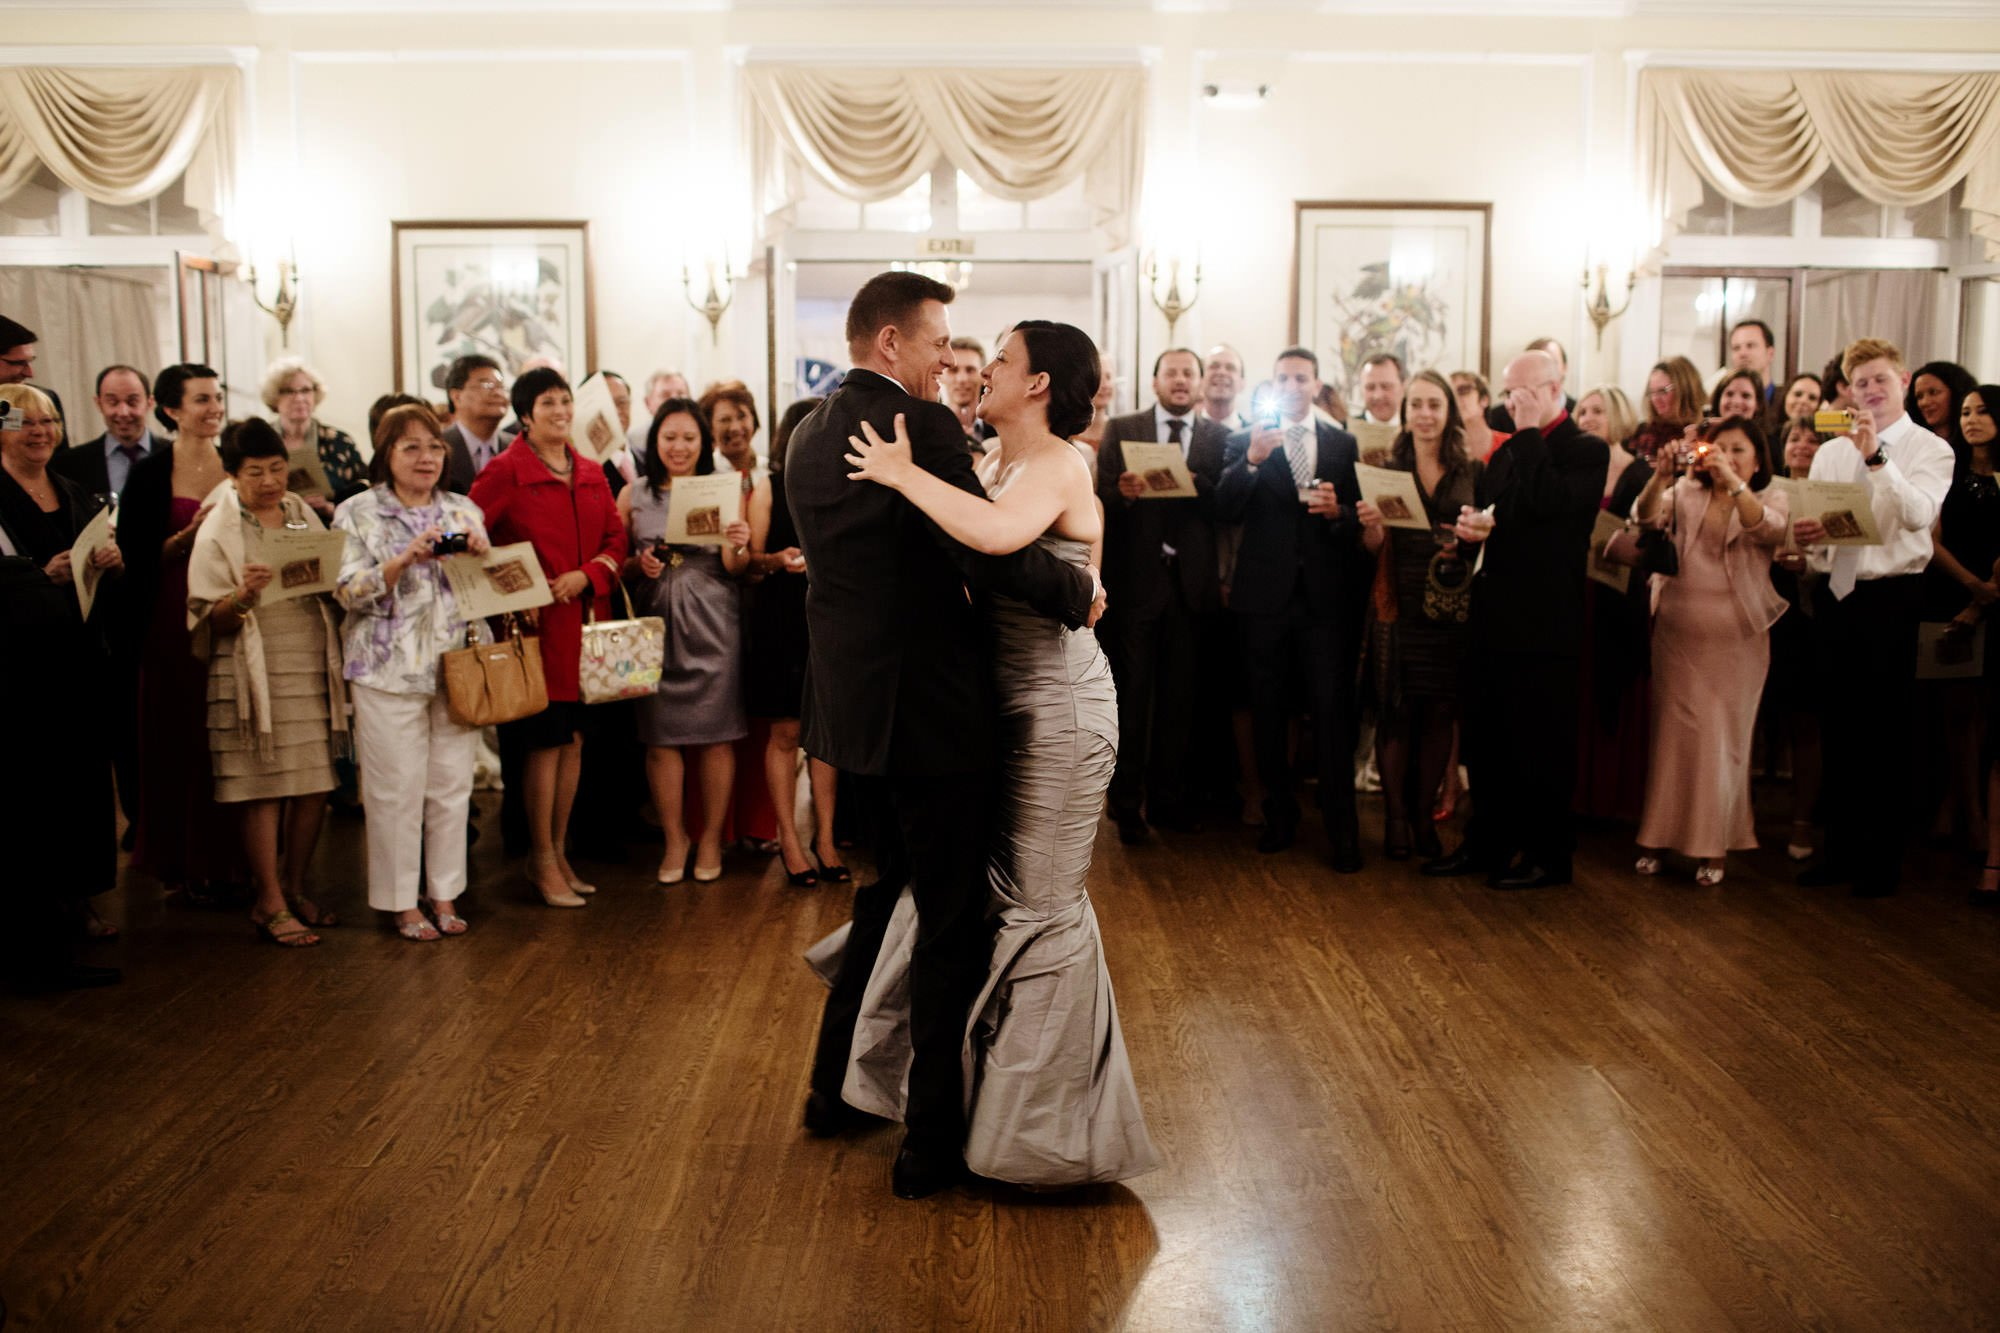 The bride and groom share their first dance during the reception of their Woodend Sanctuary Wedding.